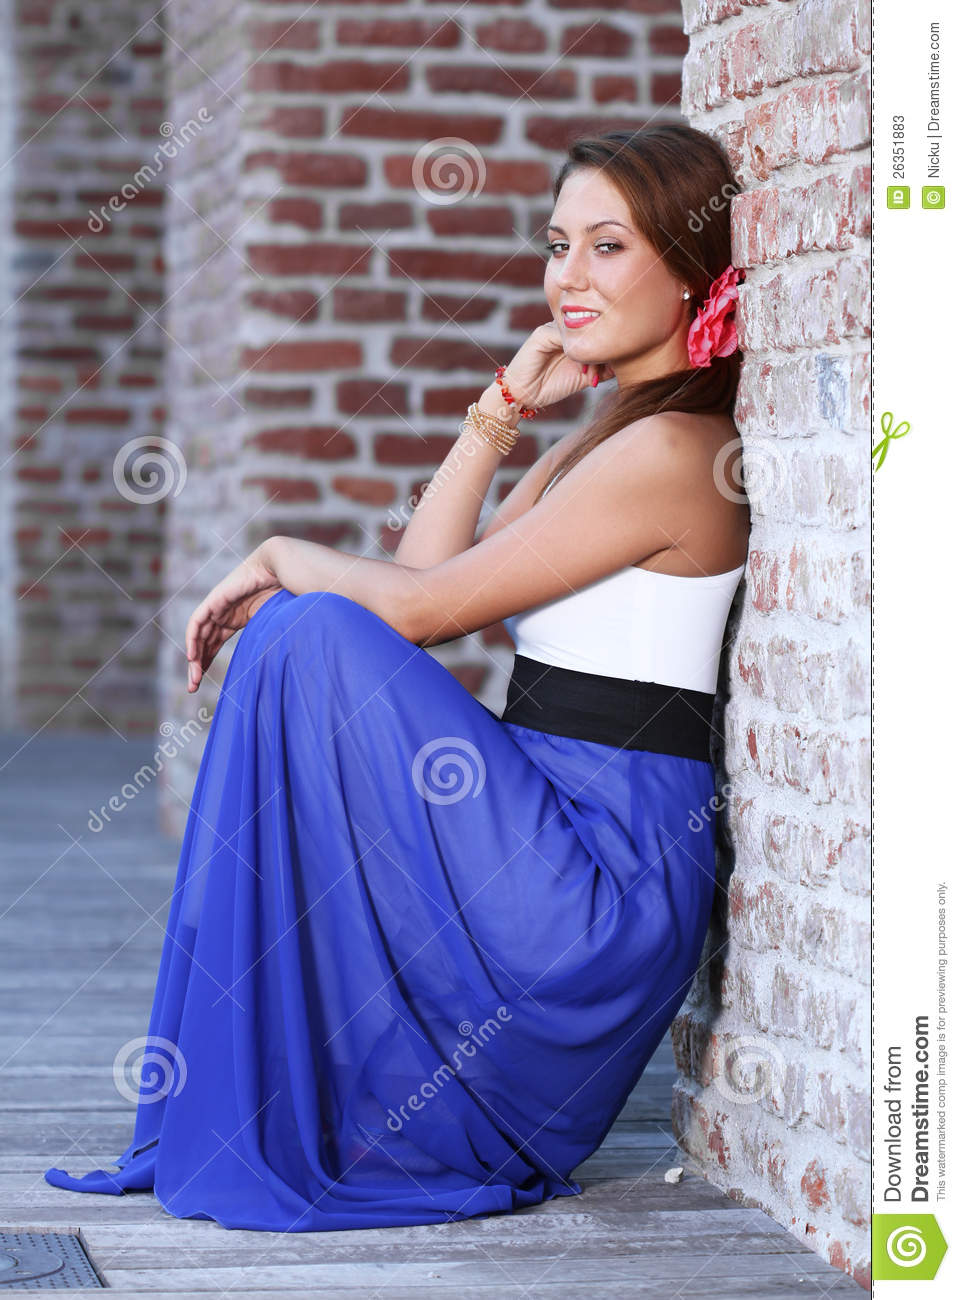 Cute young woman standing near a wall